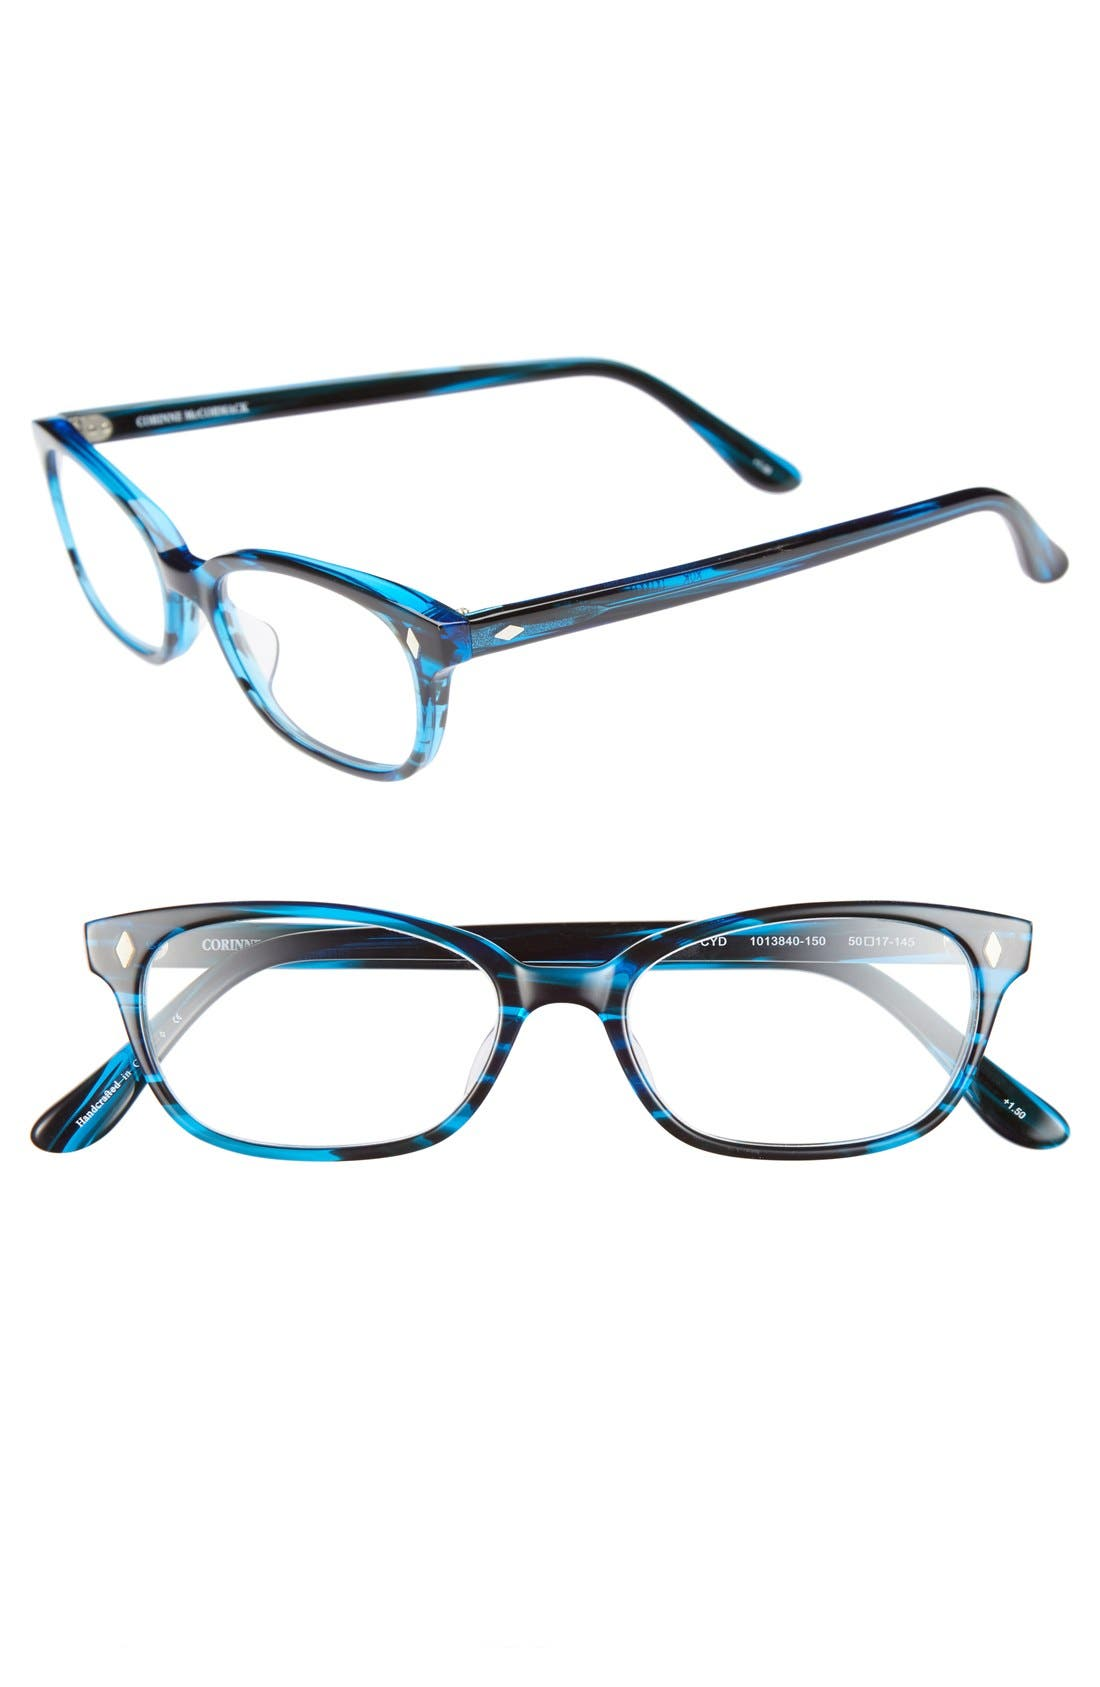 Alternate Image 1 Selected - Corinne McCormack 'Cyd' 50mm Reading Glasses (2 for $88)